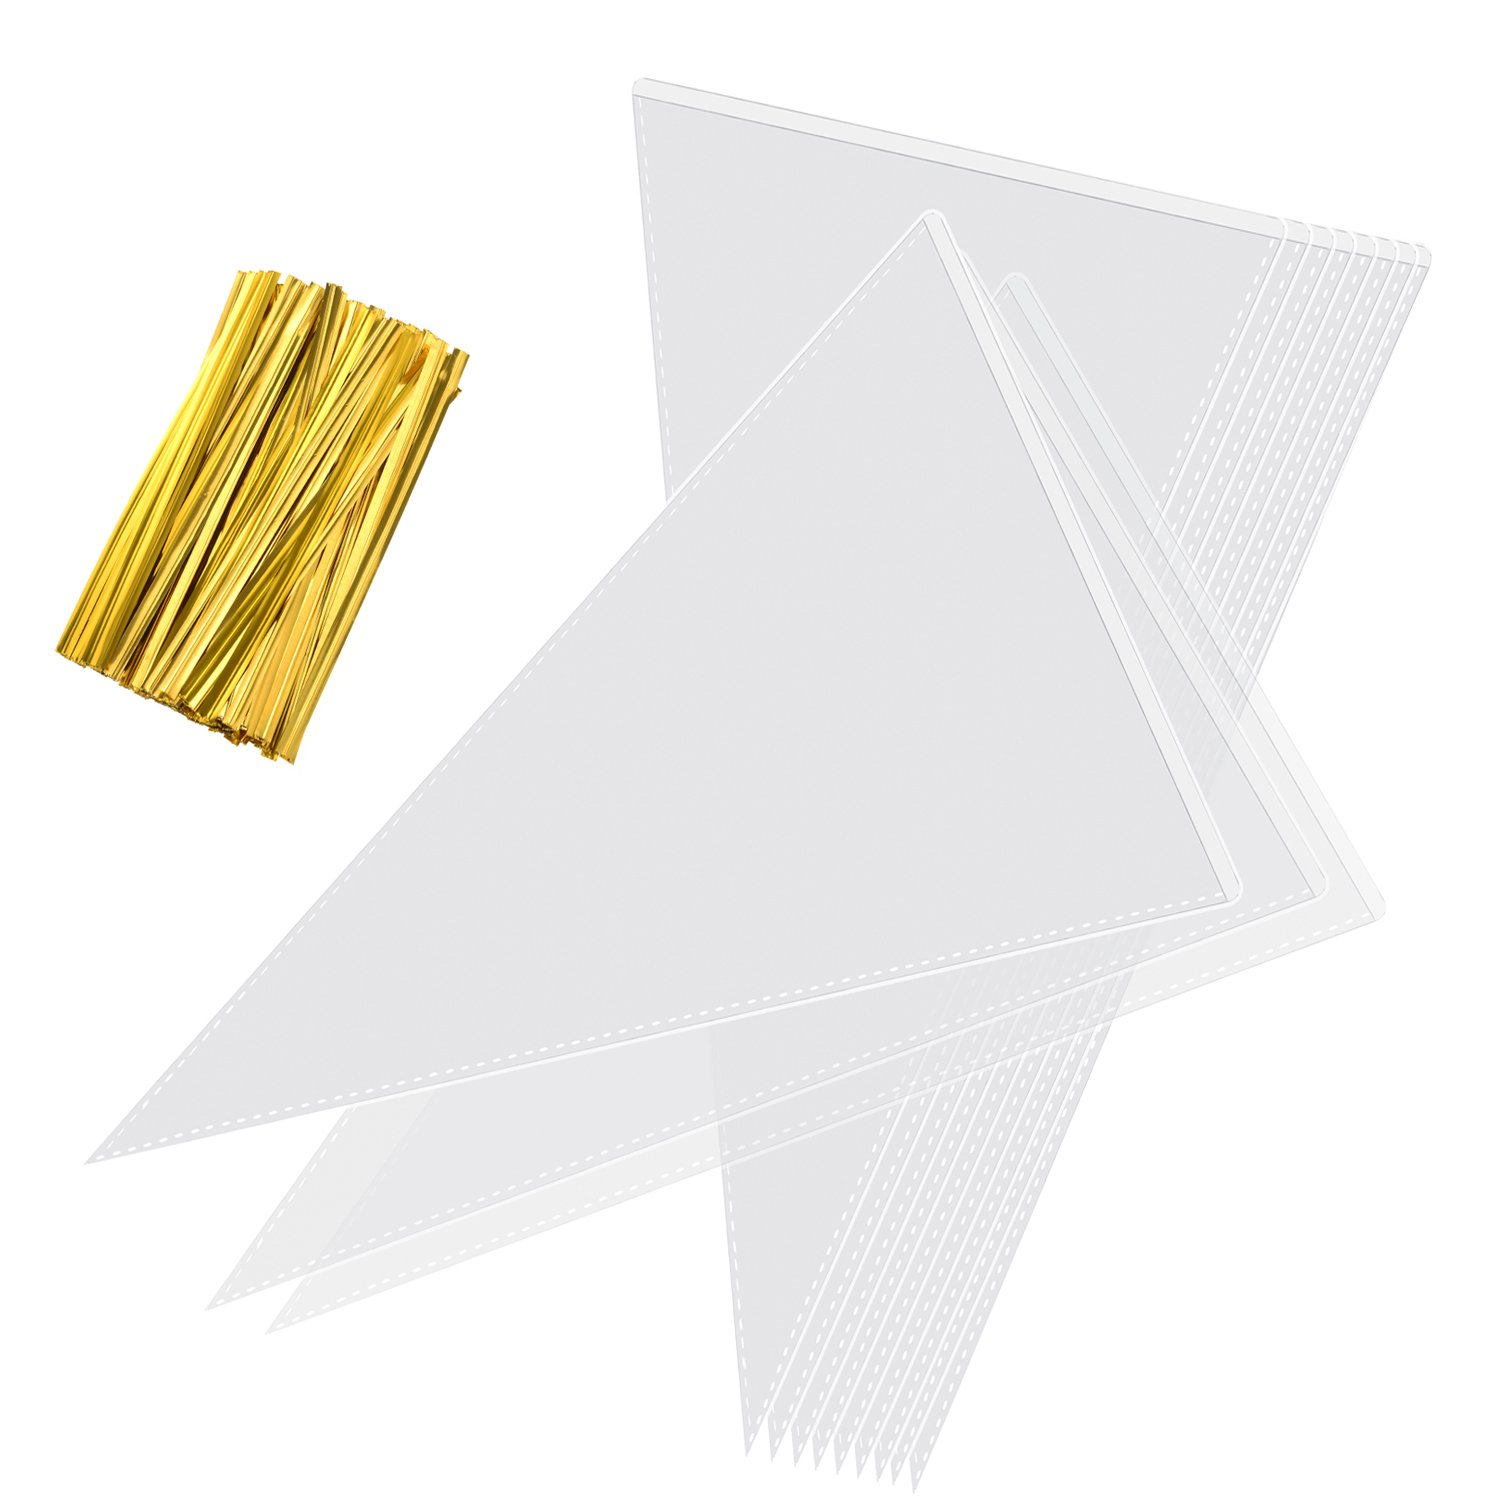 Whaline 100 Pieces Clear Cone Bags Transparent Sweet Treat Cello Bags with 100 Gold Twist Ties for Holiday Wedding and Party, 11.8 by 6.3 Inch